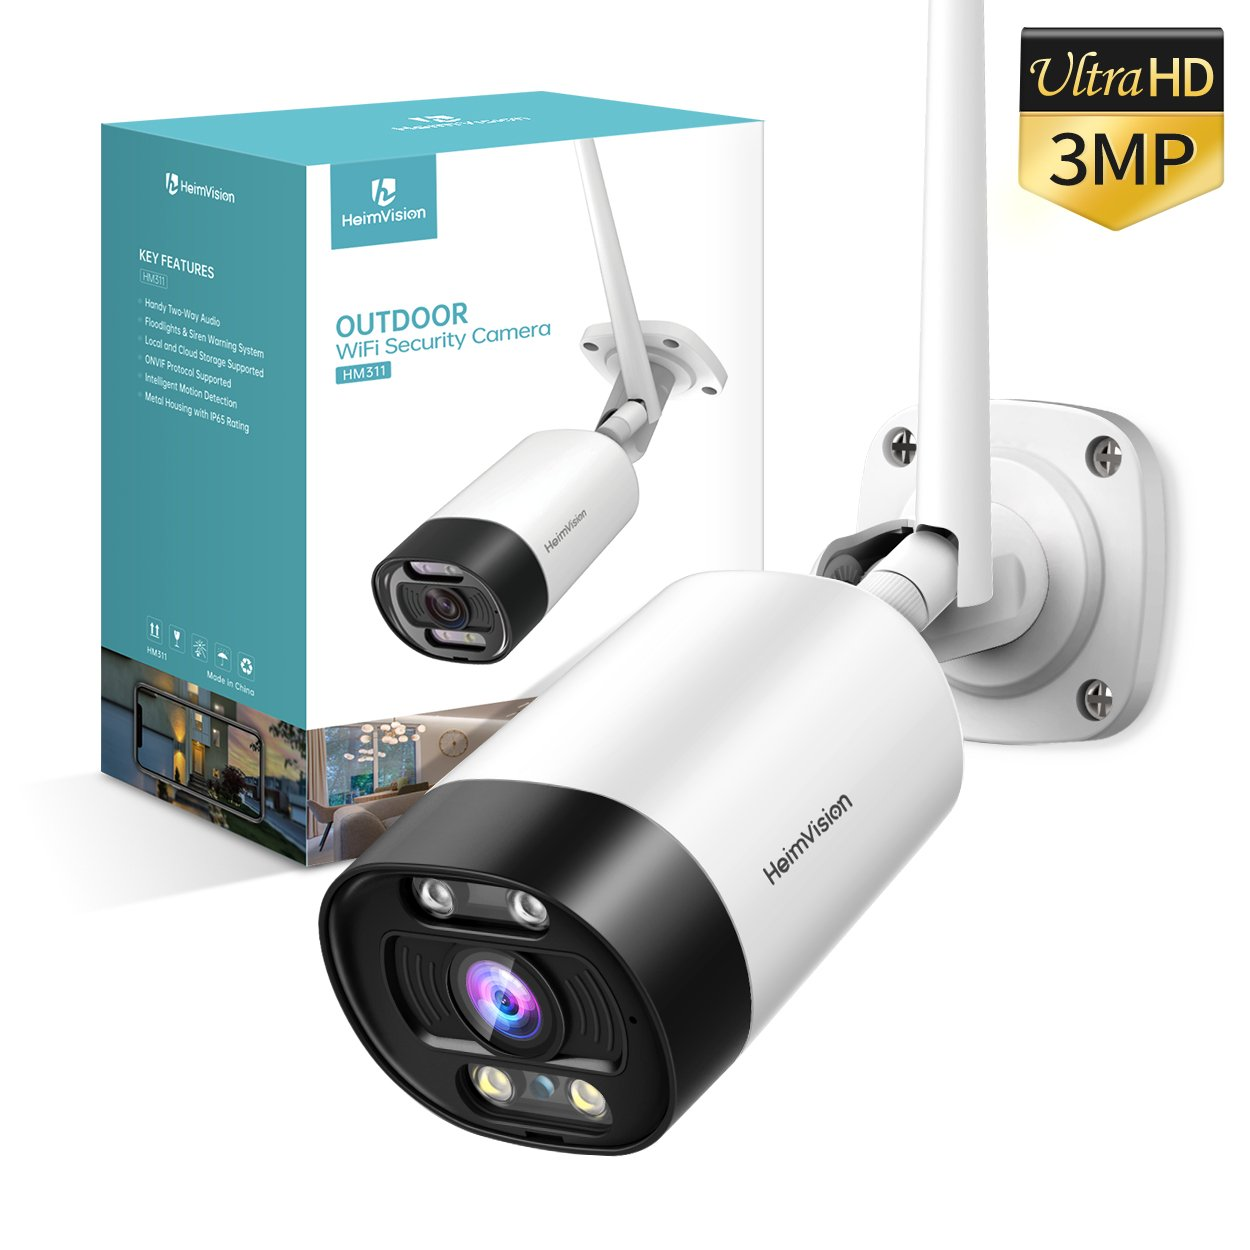 HeimVision HM311 3MP Security Camera with Floodlights